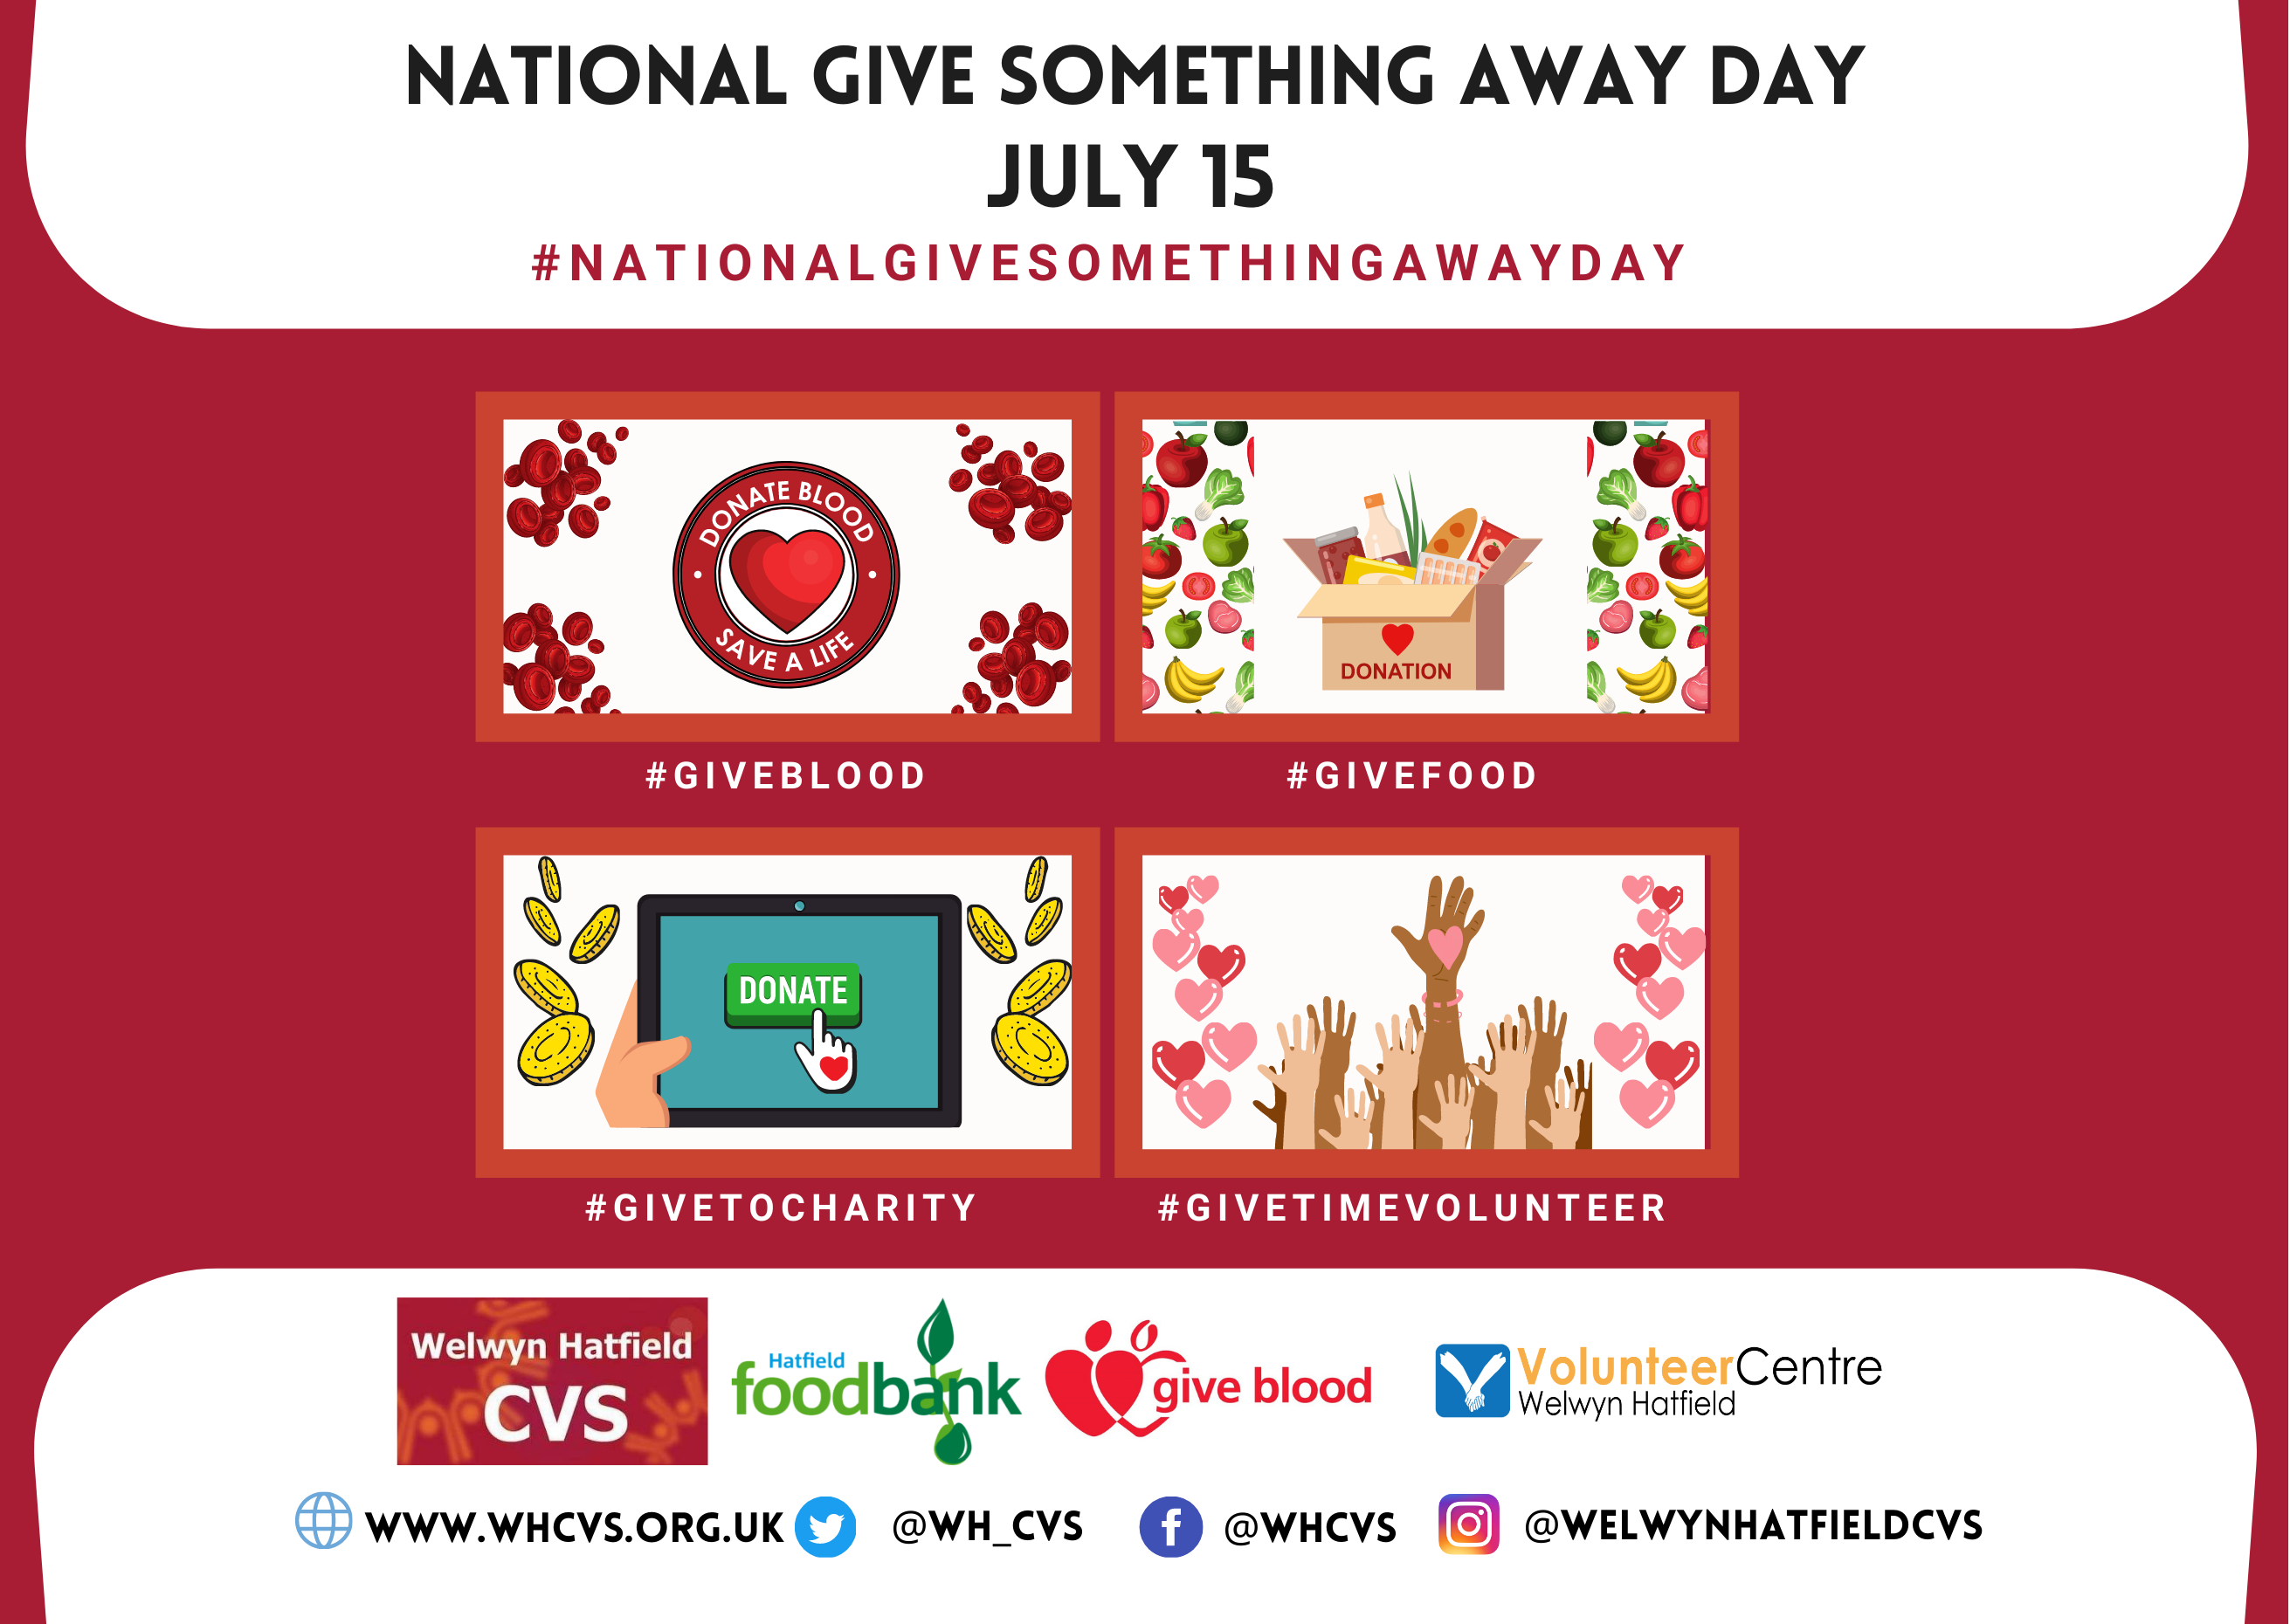 NATIONAL GIVE SOMETHING AWAY DAY POST